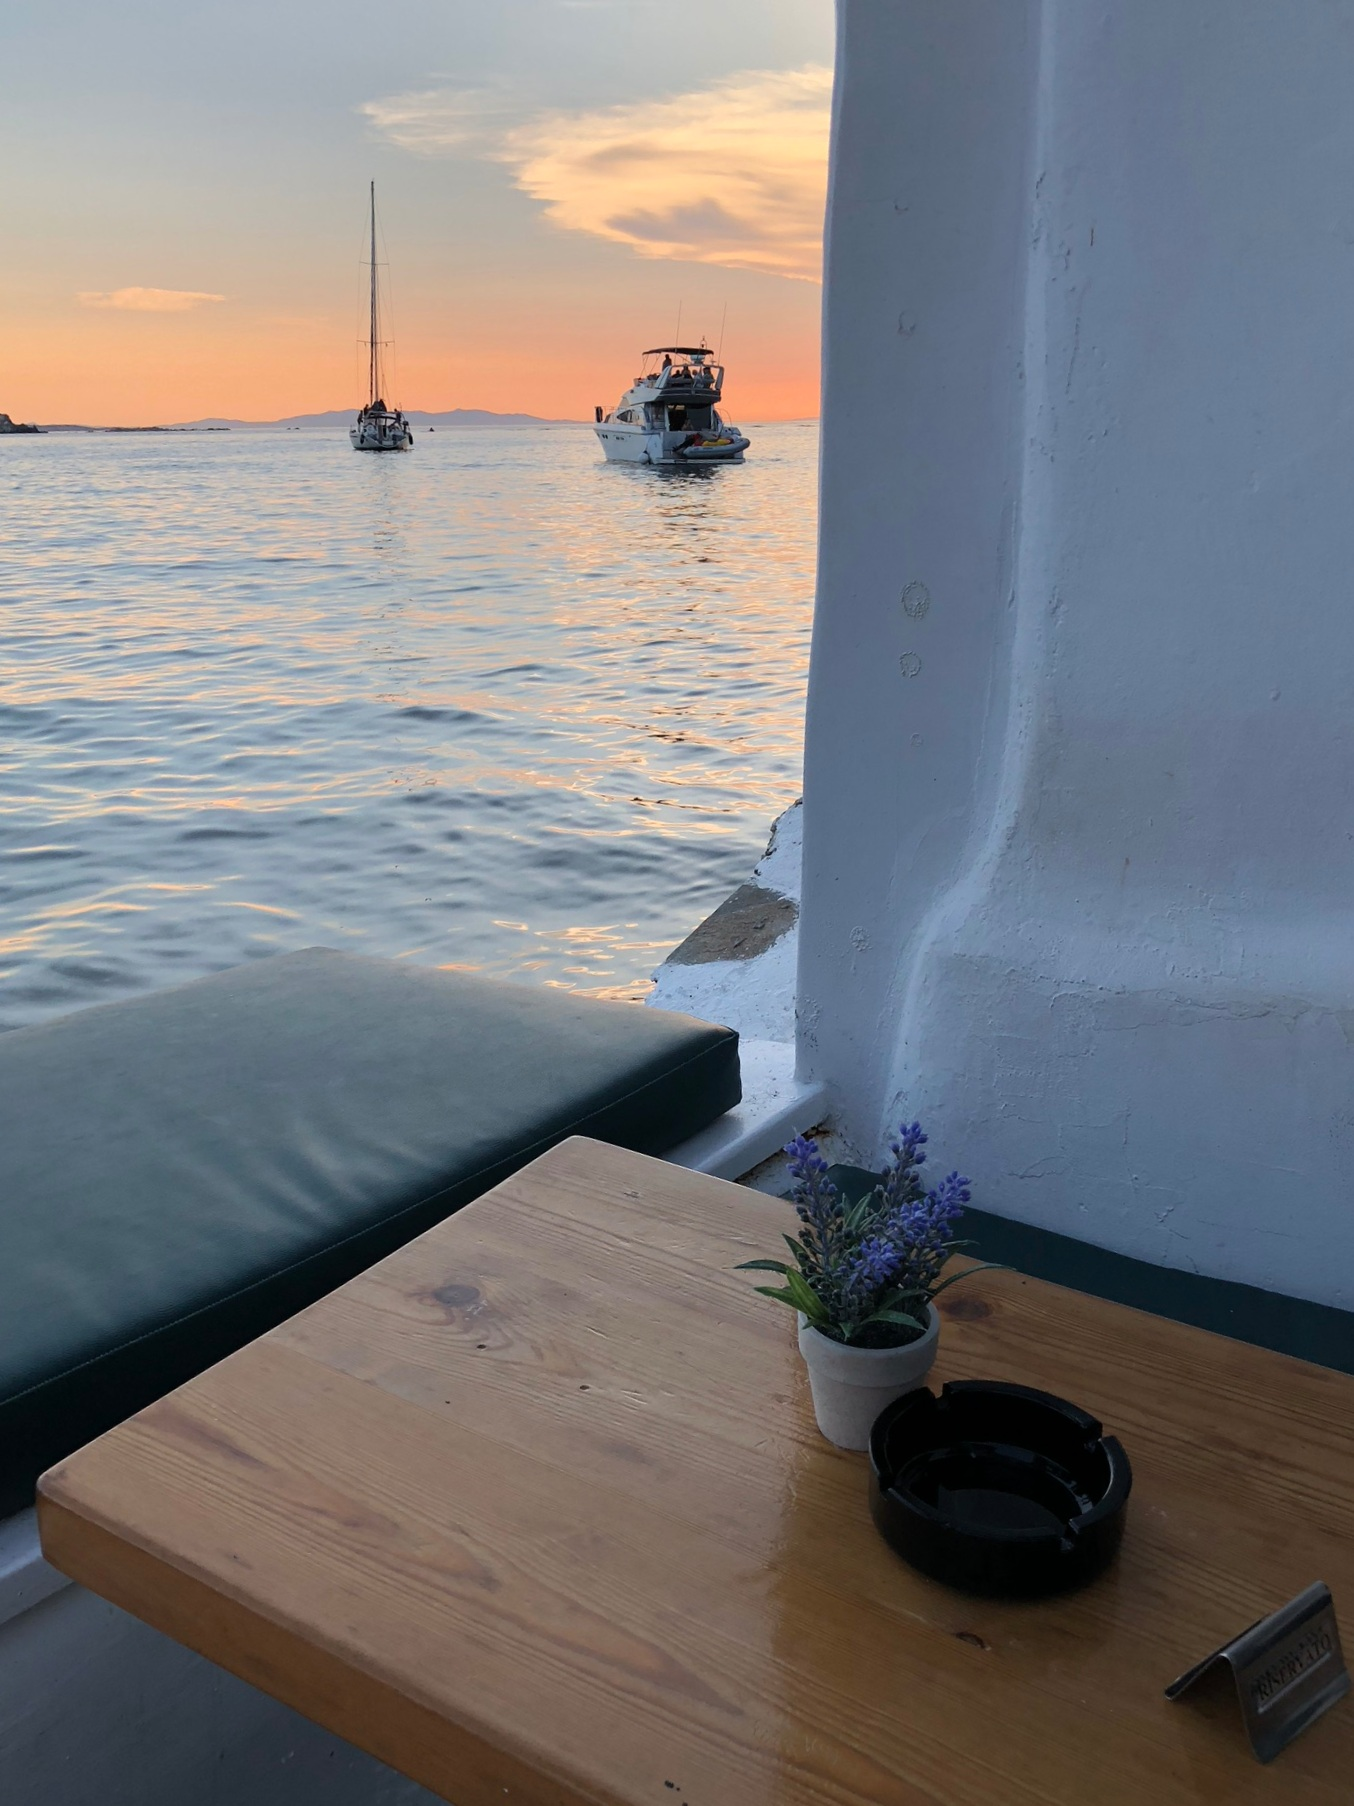 Find yourself a table with a view and settle in for sunset.